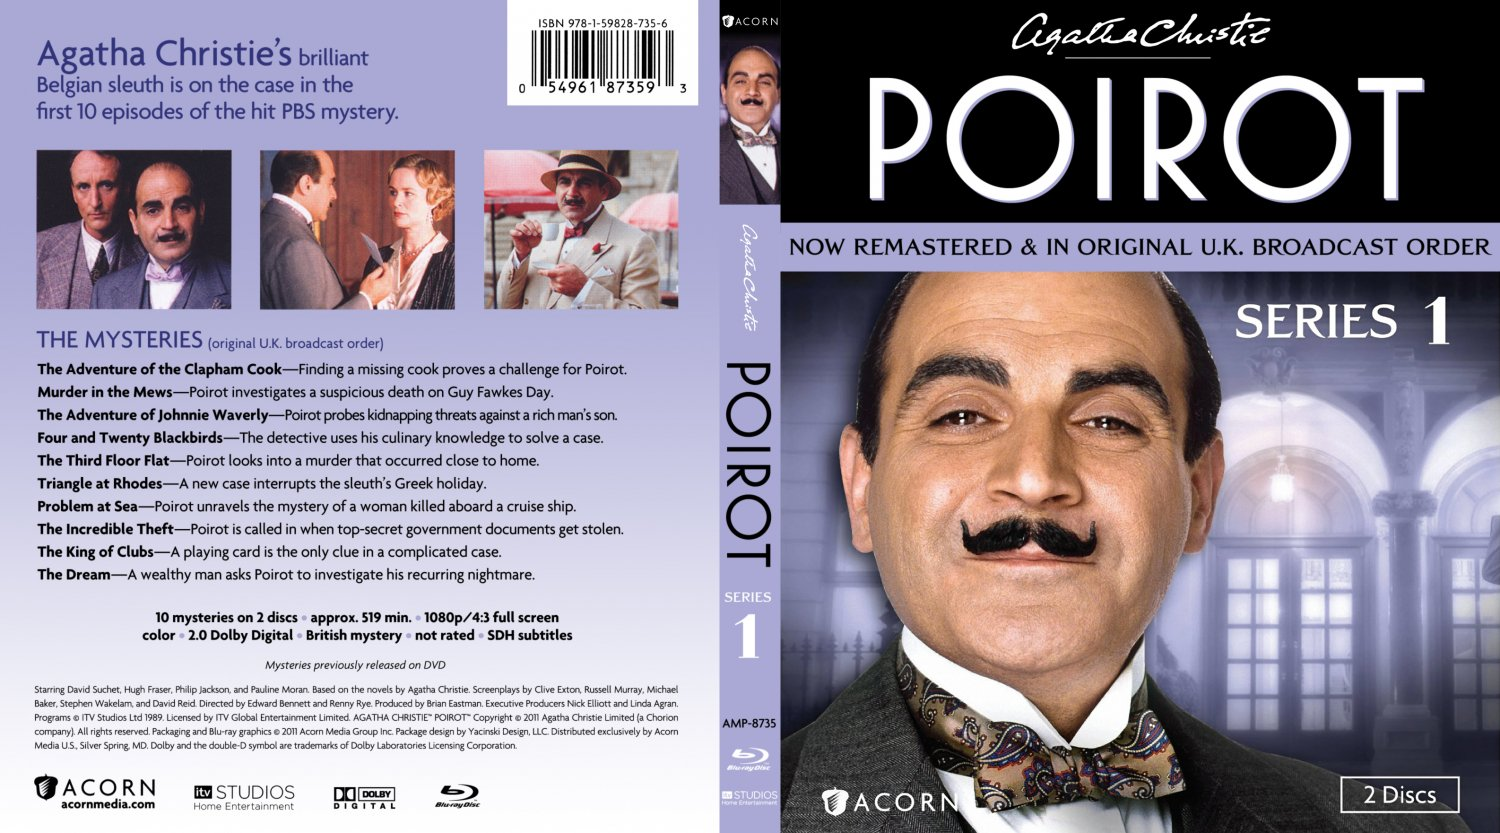 Agatha Christie's Poirot (1989) S01E05: The Third Floor Flat